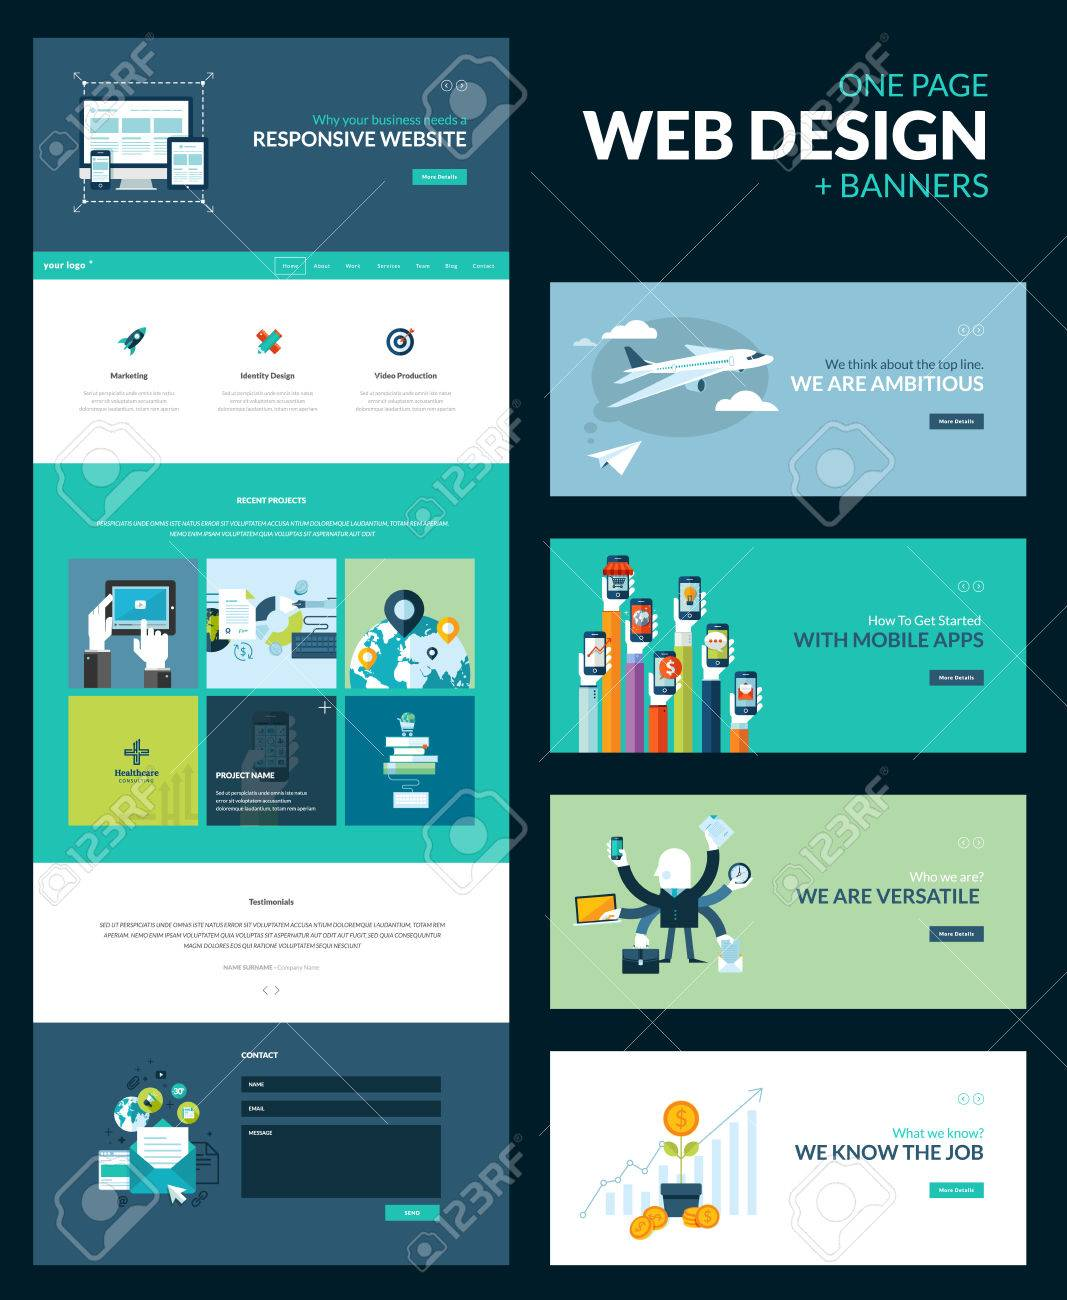 responsive website design templates template responsive website design templates